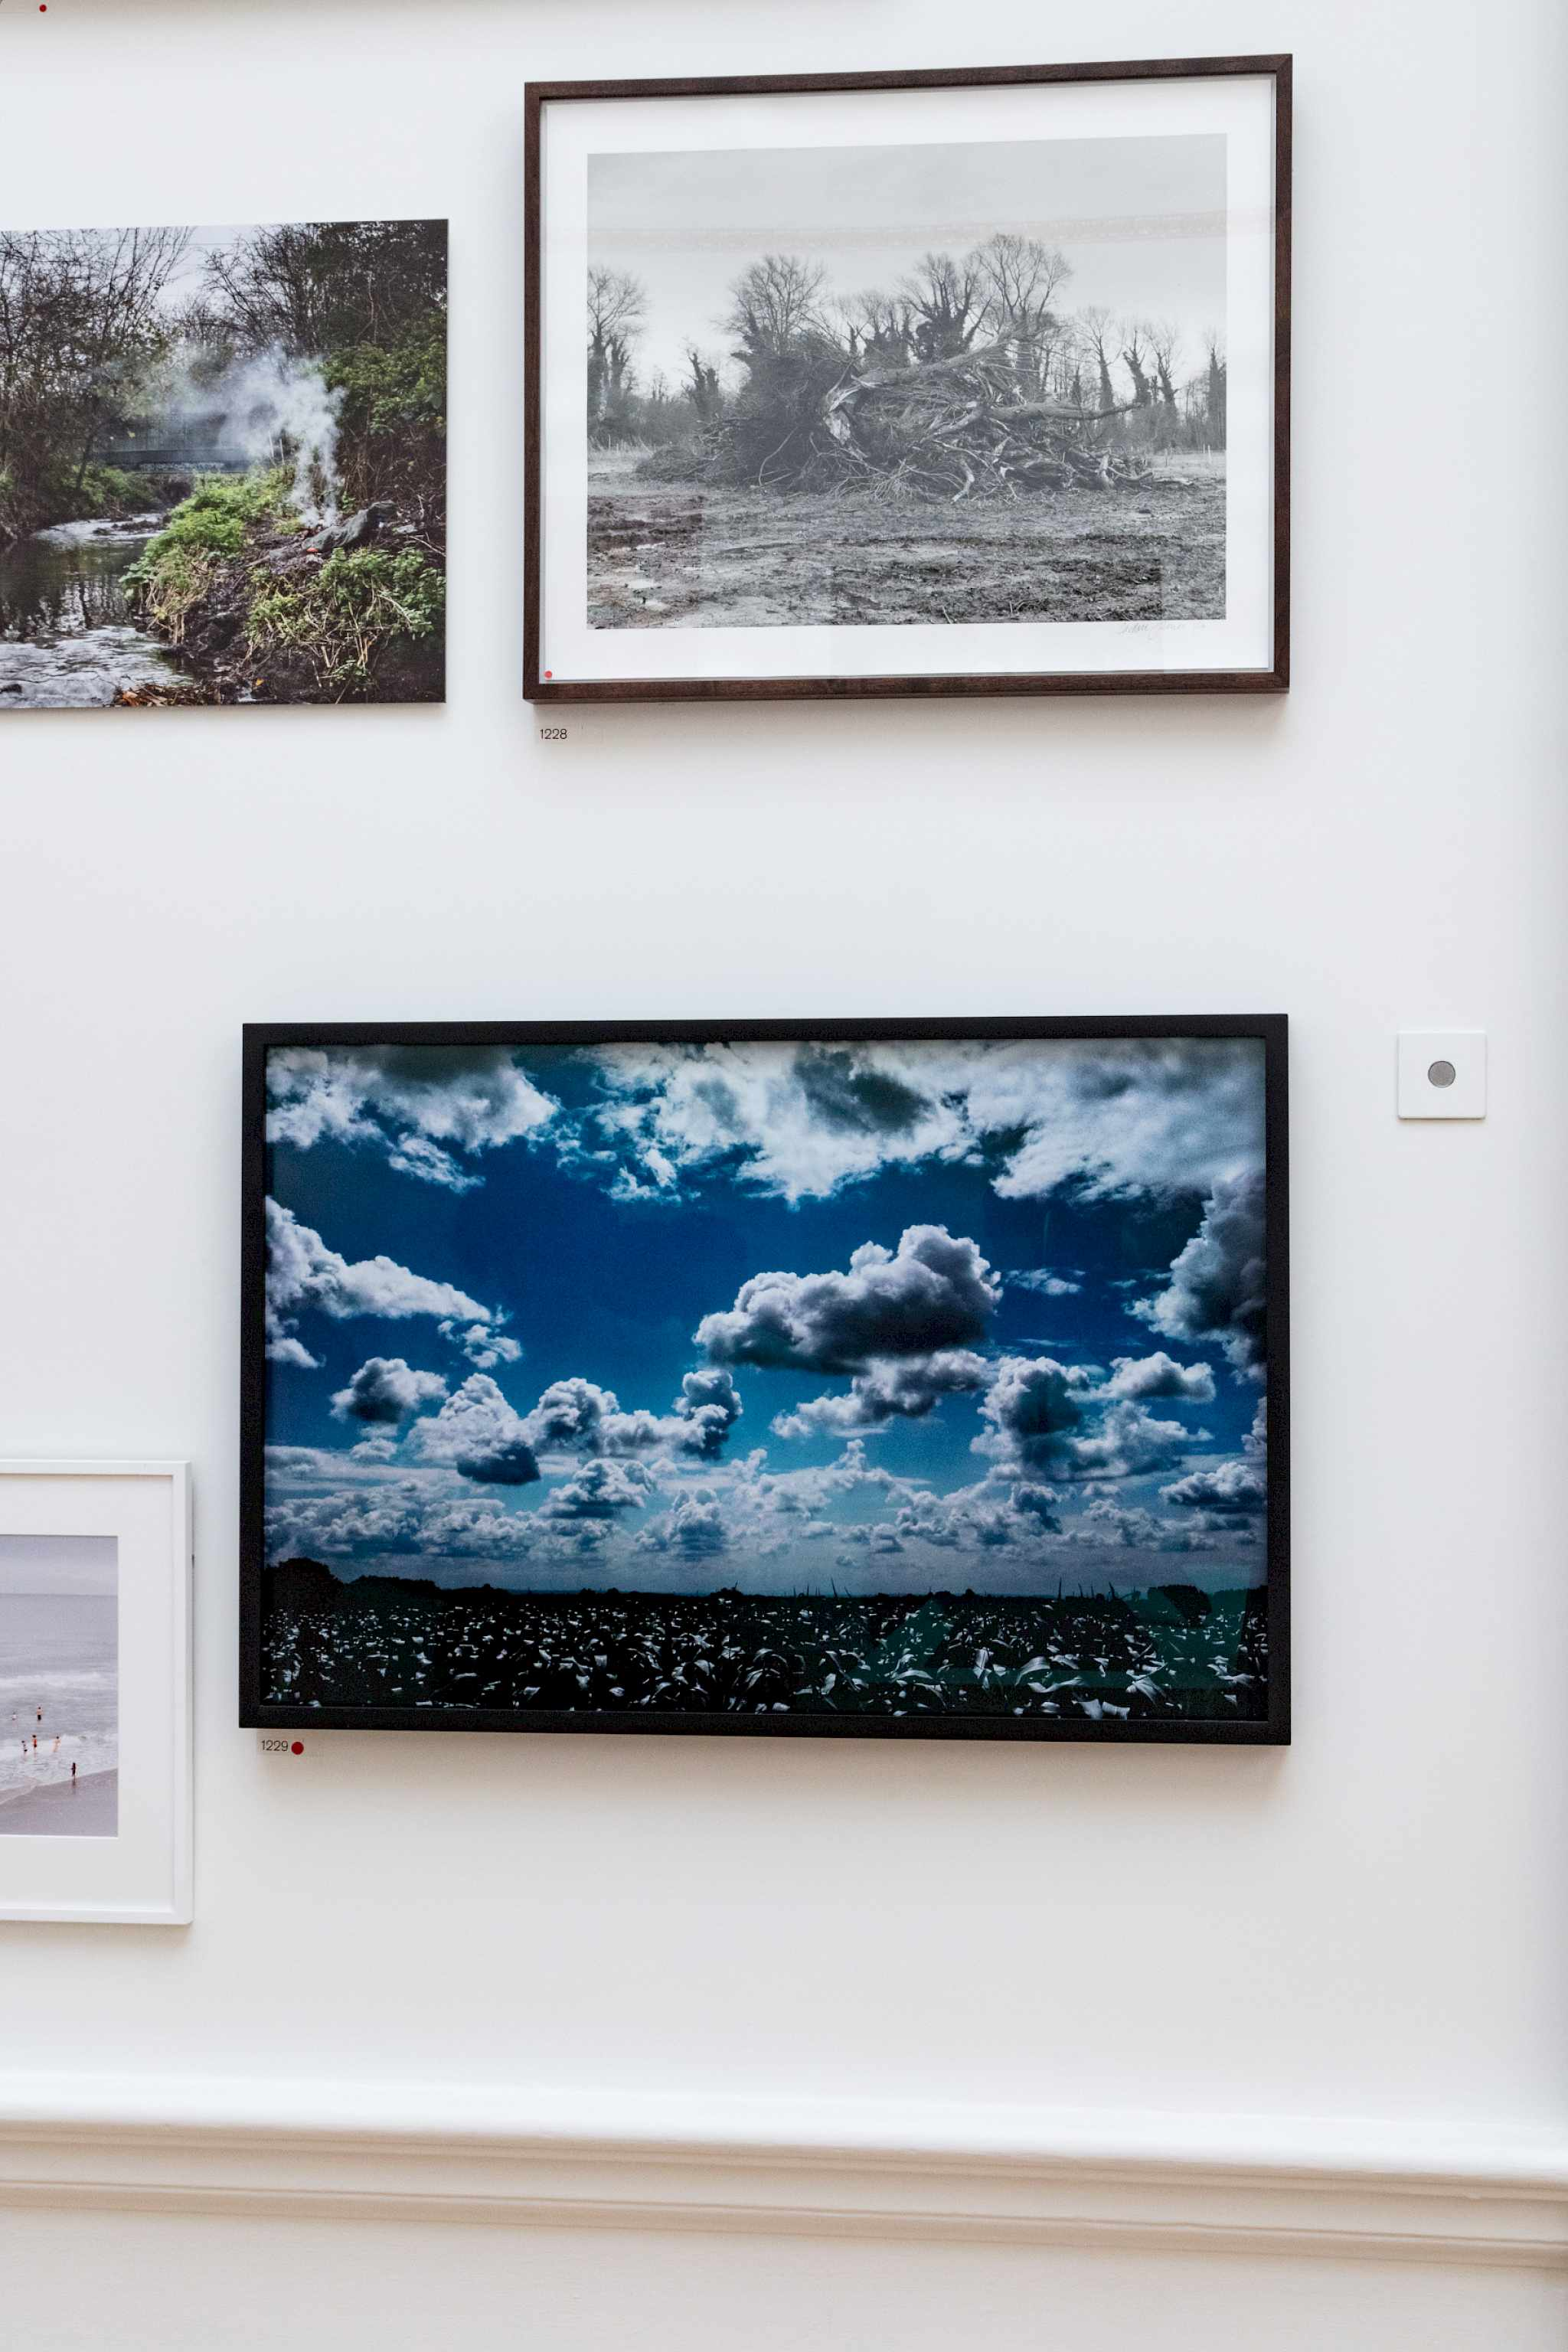 Installation view, photograph by Scott Mead